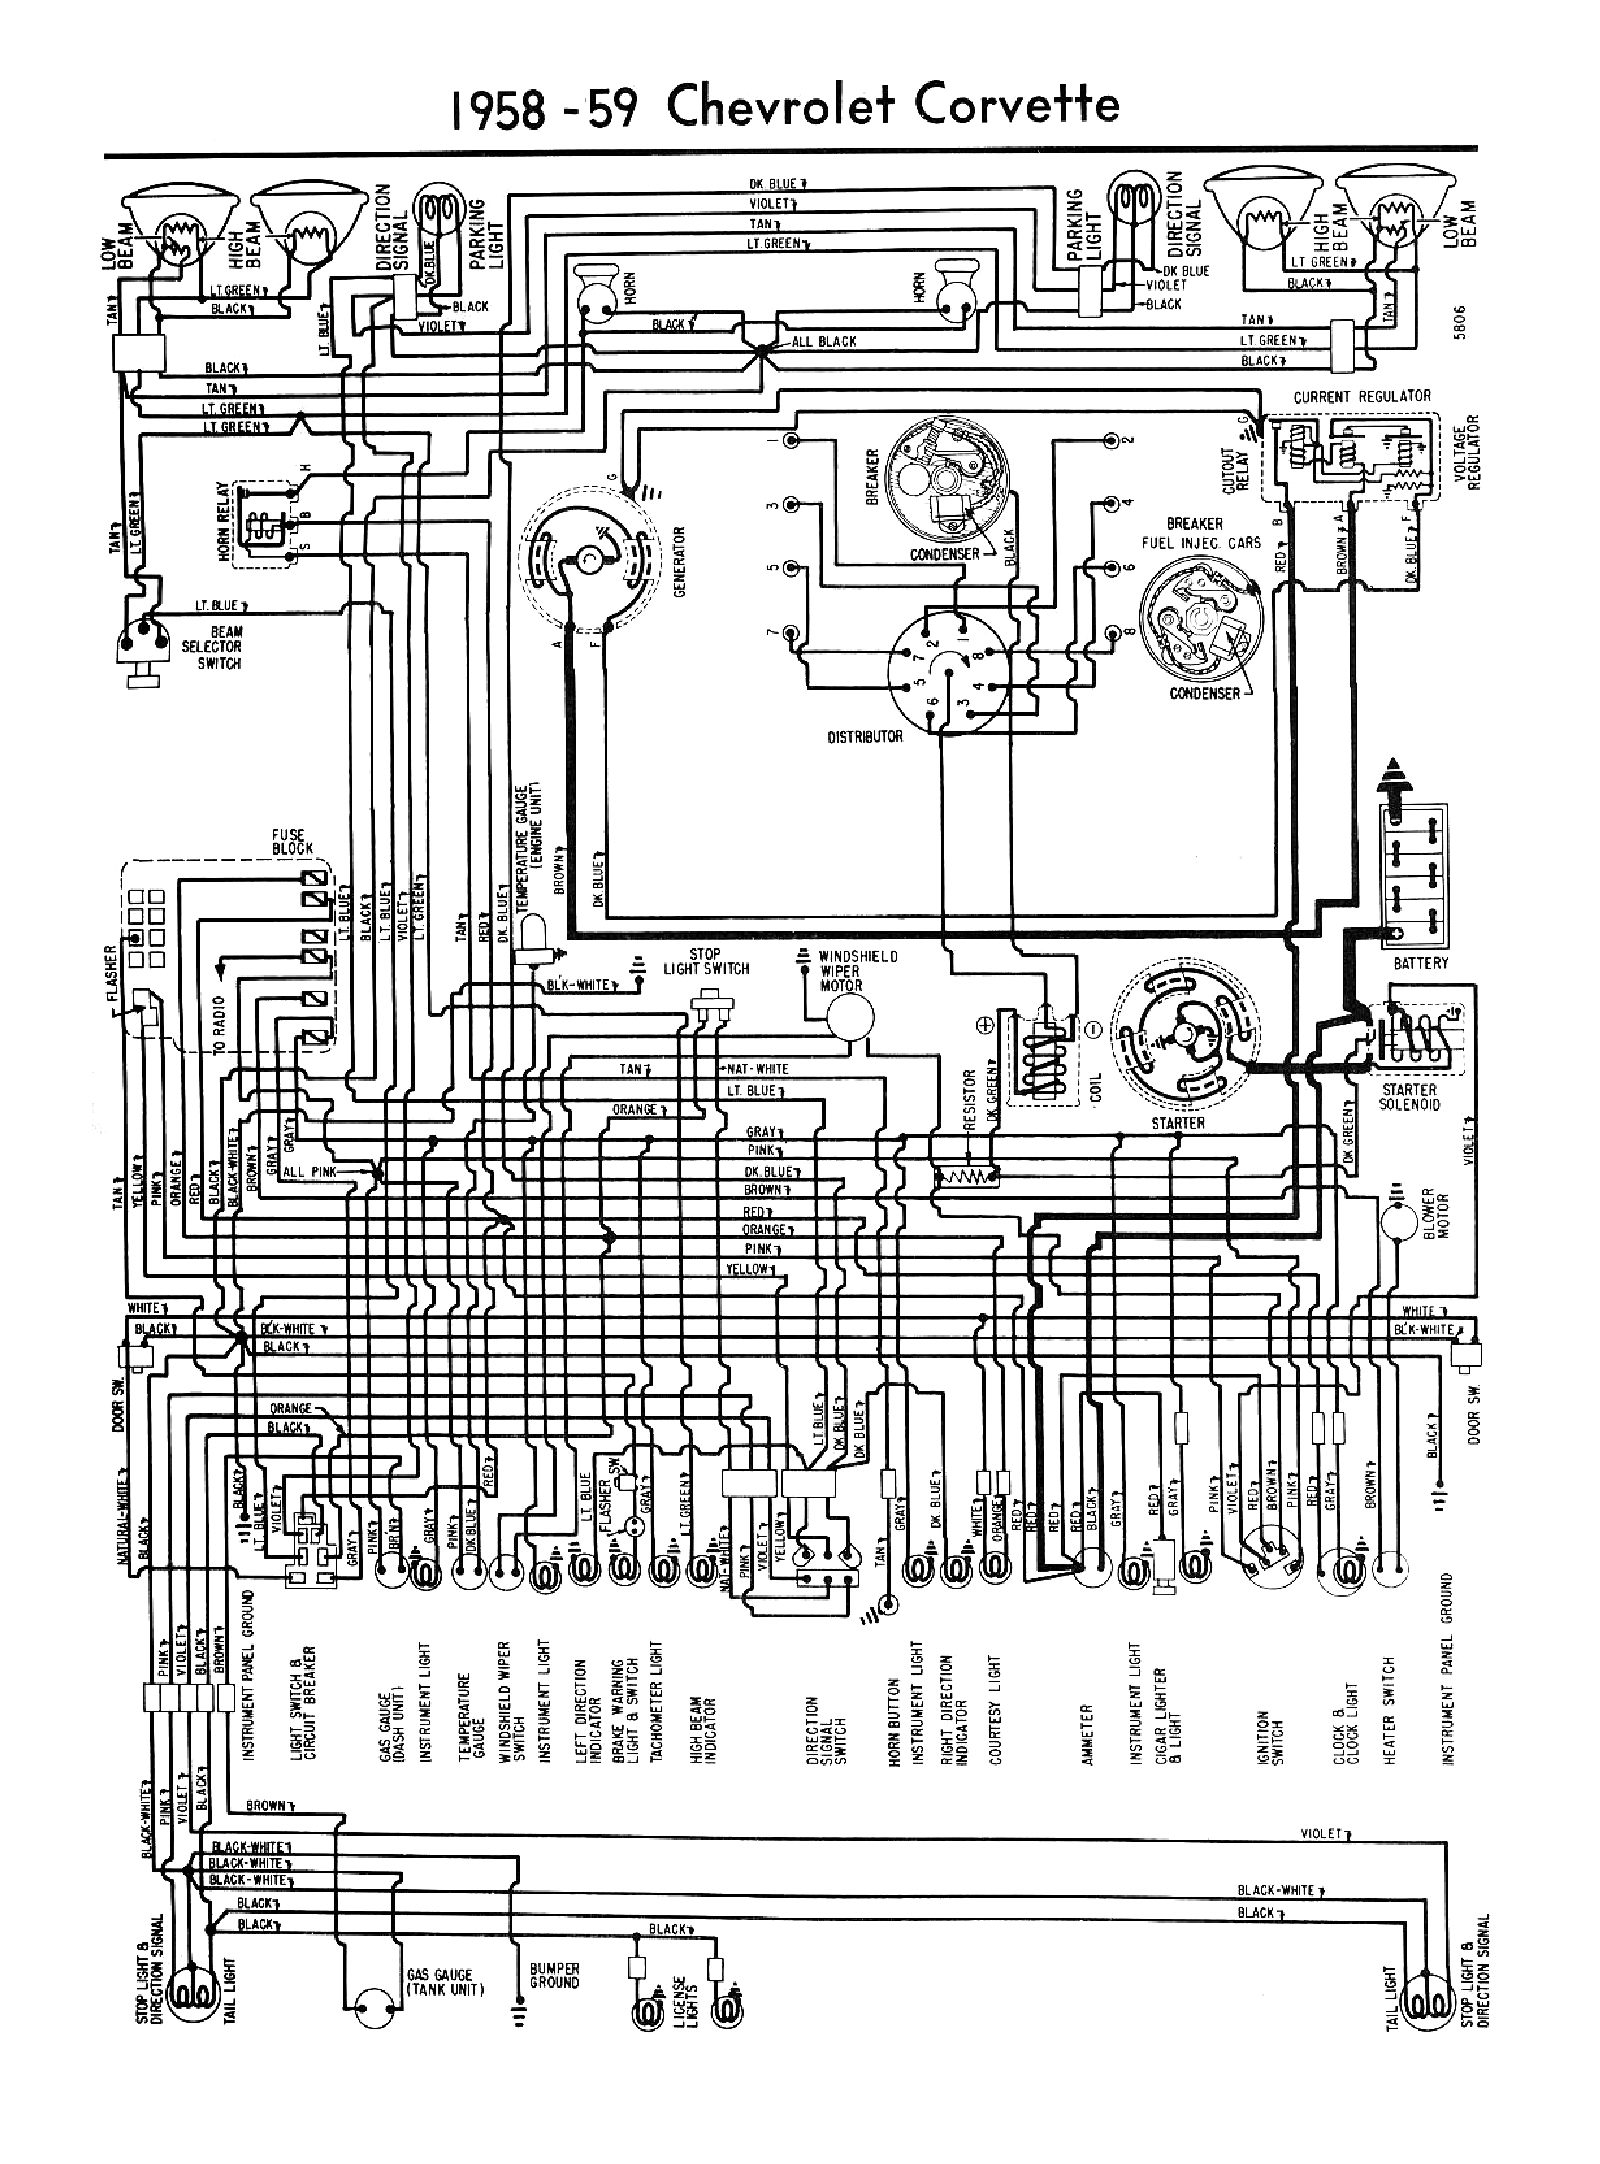 1976 Chevy Truck Wiring Diagram -Headset With Microphone Wiring Diagram |  Begeboy Wiring Diagram SourceBegeboy Wiring Diagram Source